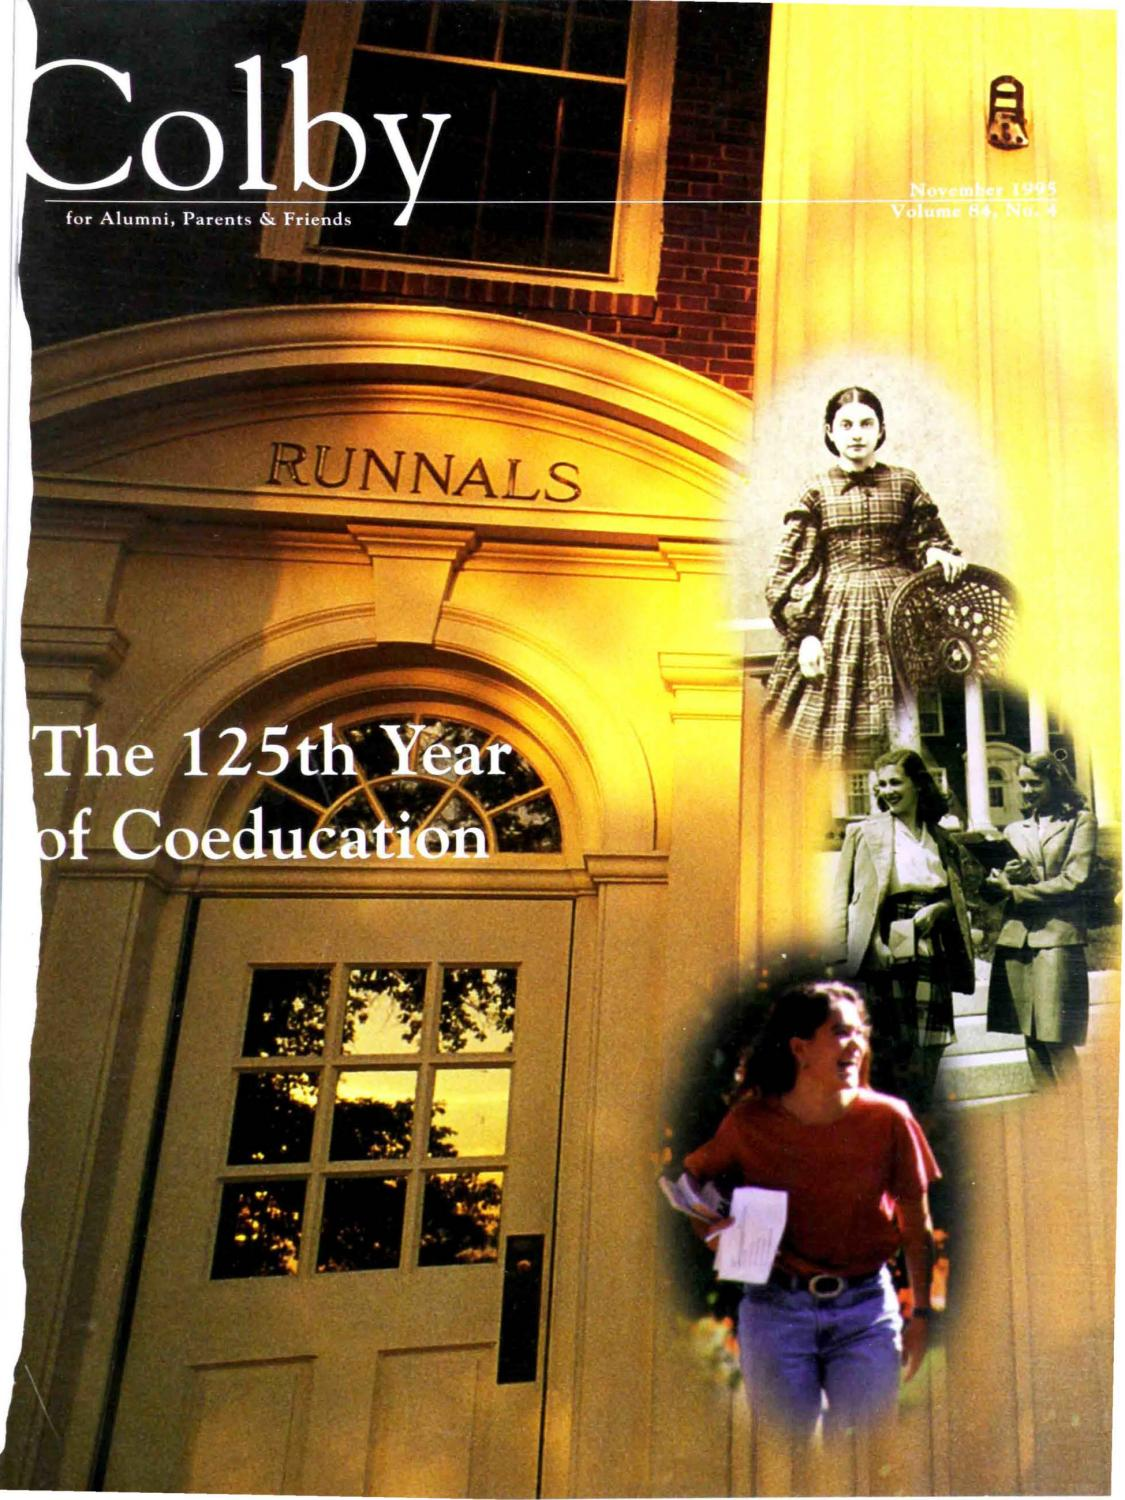 colby magazine vol 84, no 4 by colby college libraries issuu